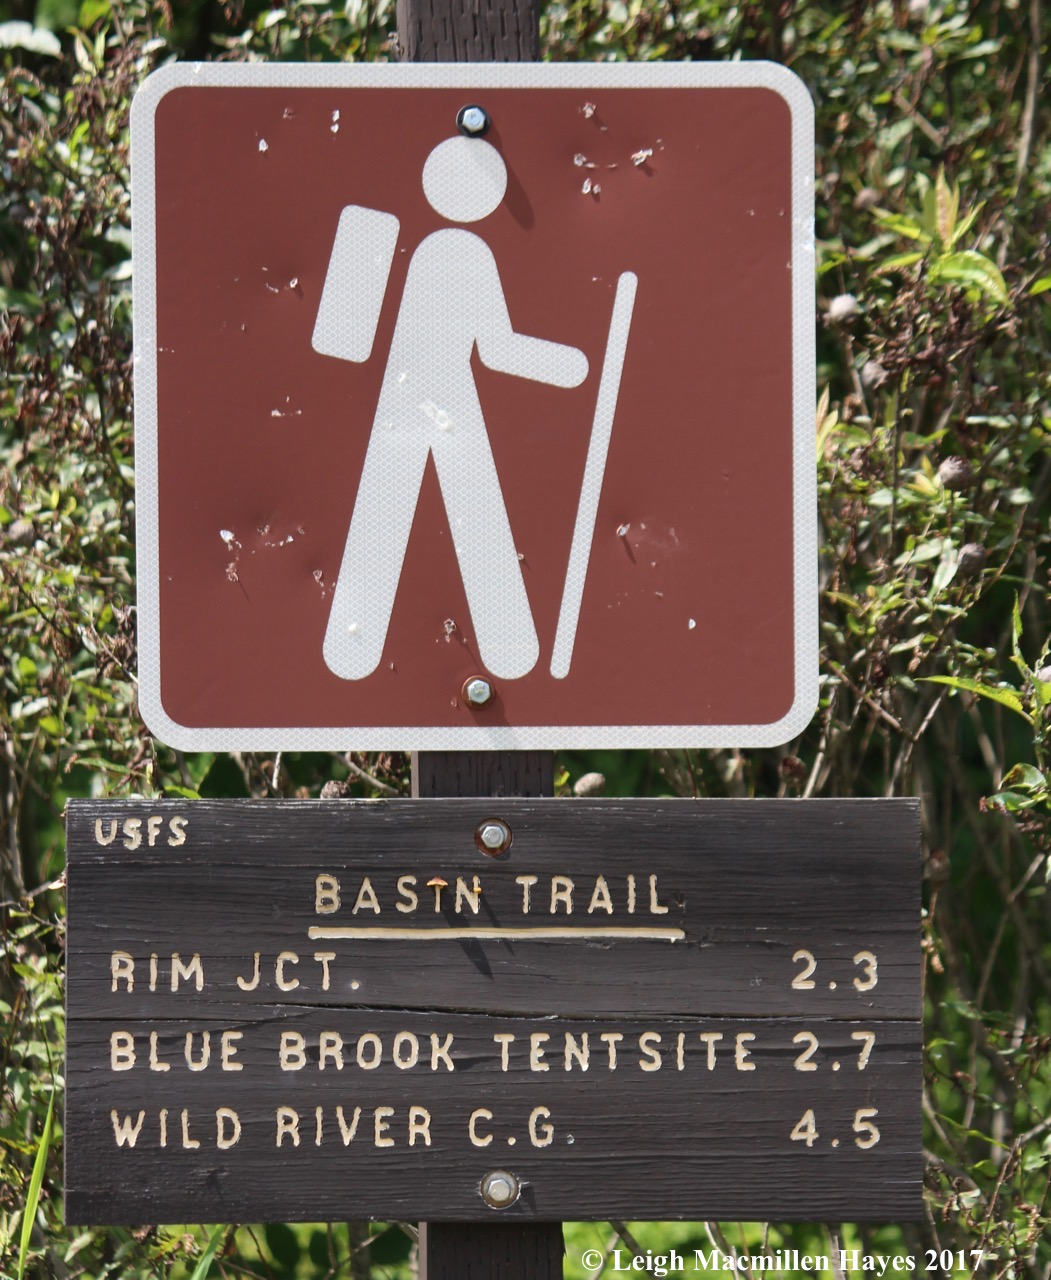 b-trail sign